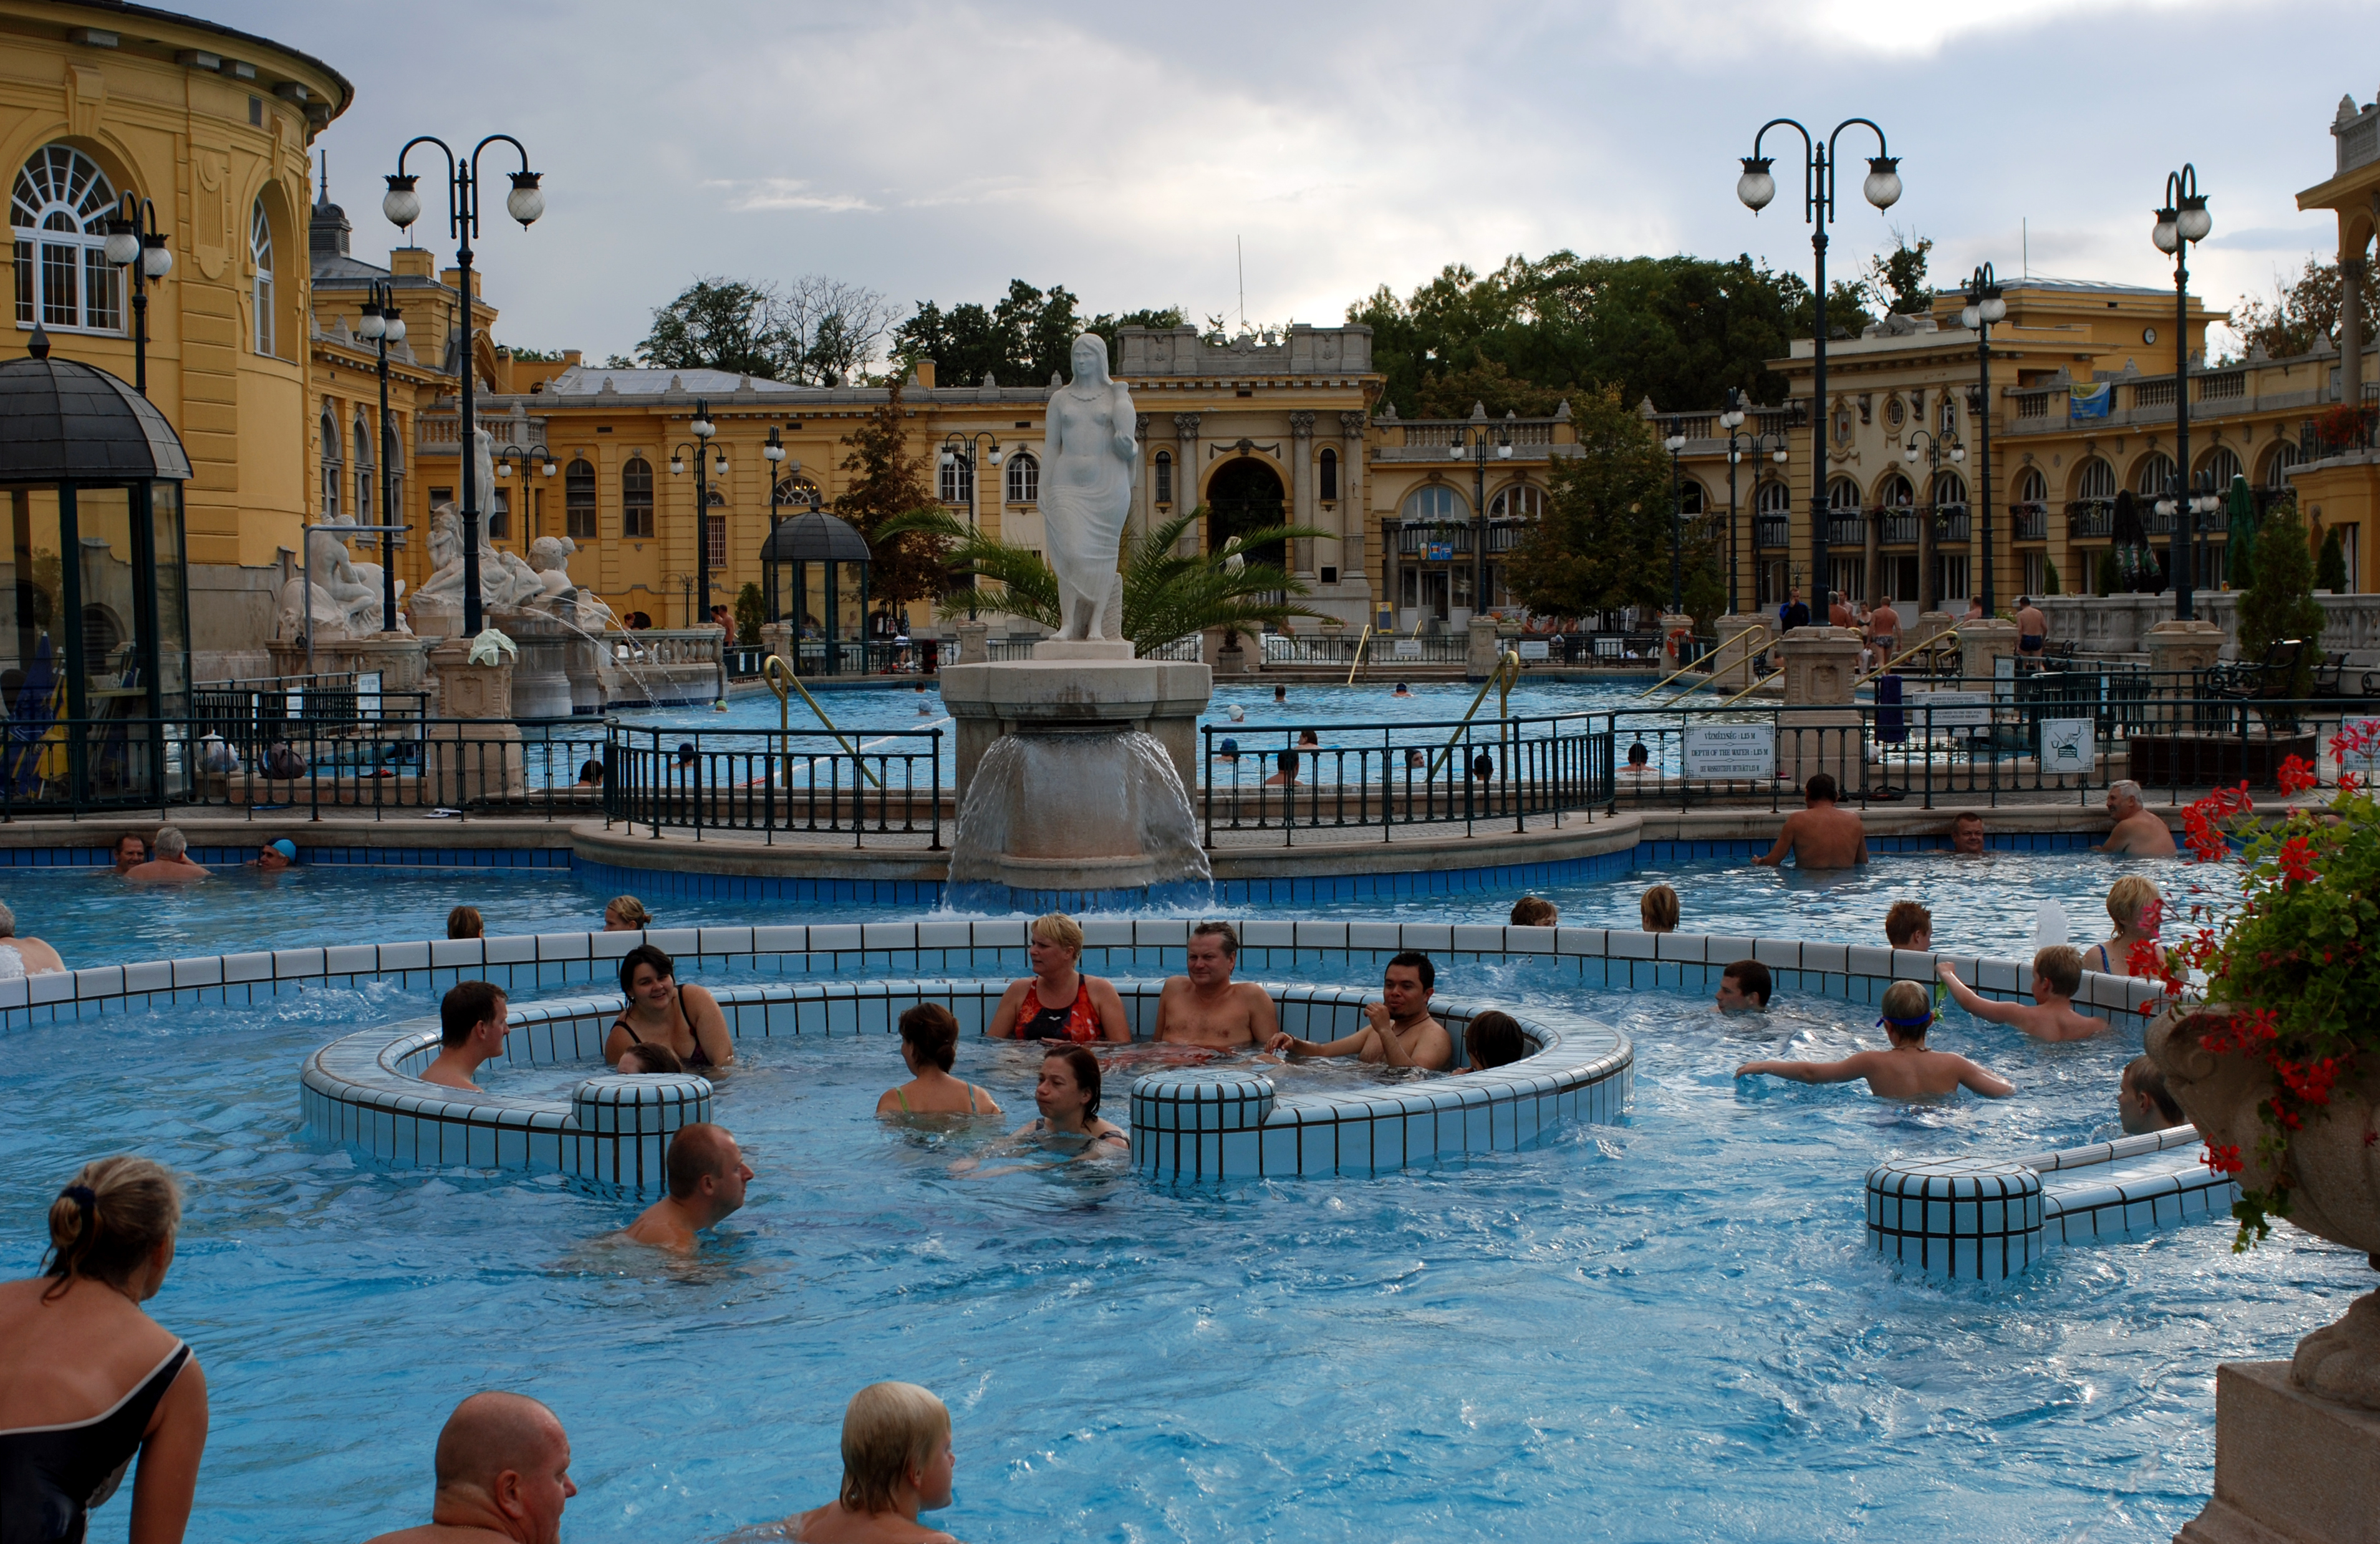 Soubor sz chenyi gy gyf rd thermal spa in budapest 011 for A list salon budapest